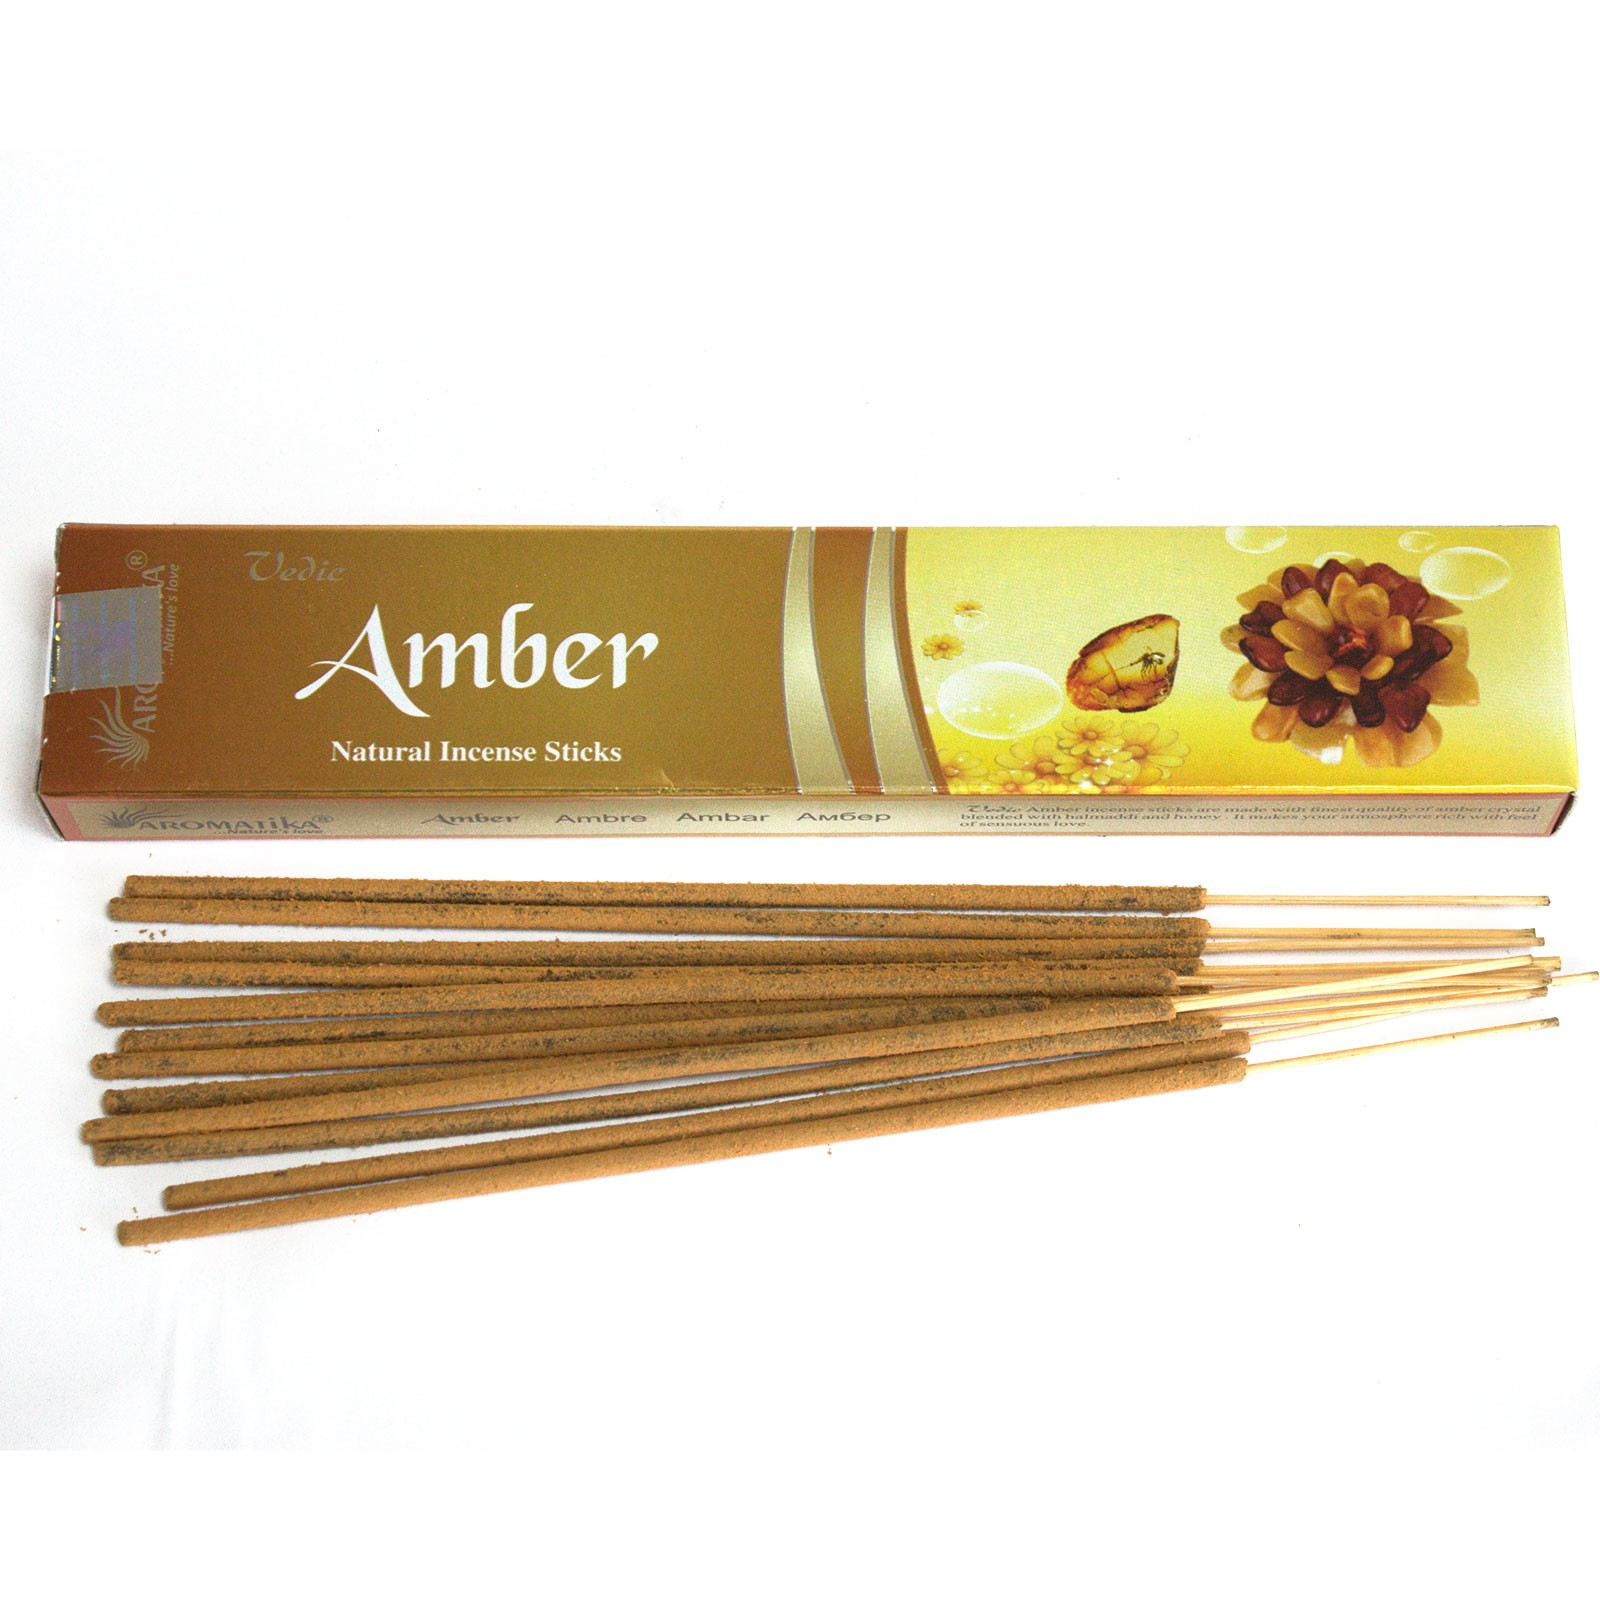 Vedic Incense Sticks Amber